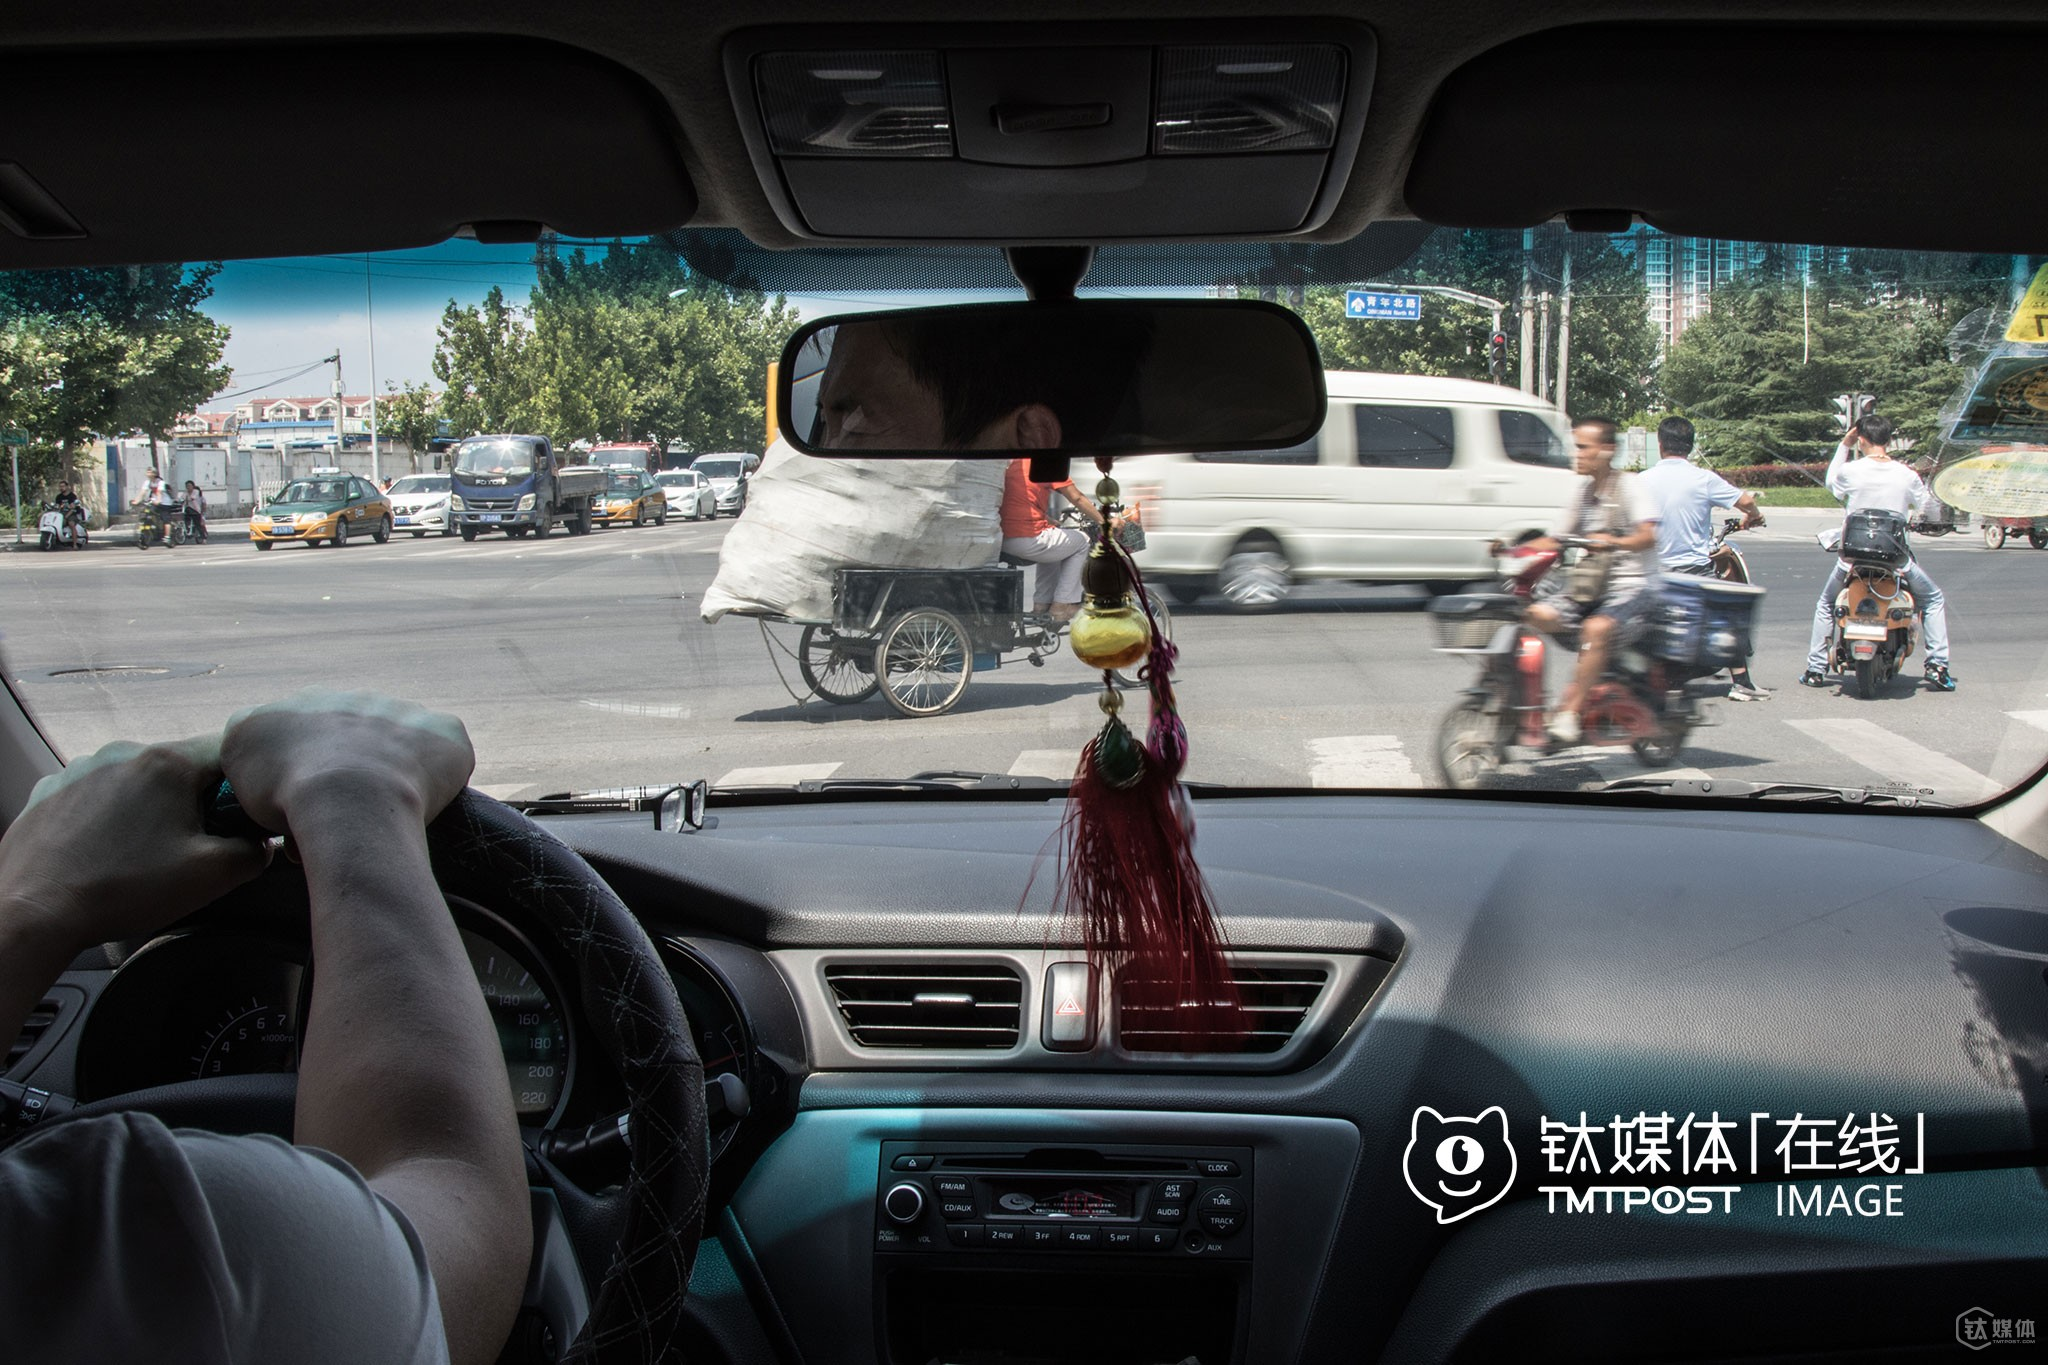 """After all, Didi will protect drivers' interests. Otherwise, no drivers will be willing to pick up riders anymore,"" Shao Yi, a full-time driver for online ride-hailing services, thought, ""if they continue to compete, ordinary Chinese will benefit, because drivers will earn more money and riders also pay less; Yet, if they stop fighting, we will earn less, while riders will have to pay more. I guess that I have no choice but to wait for their next move and decide then,"" he told TMTpost."